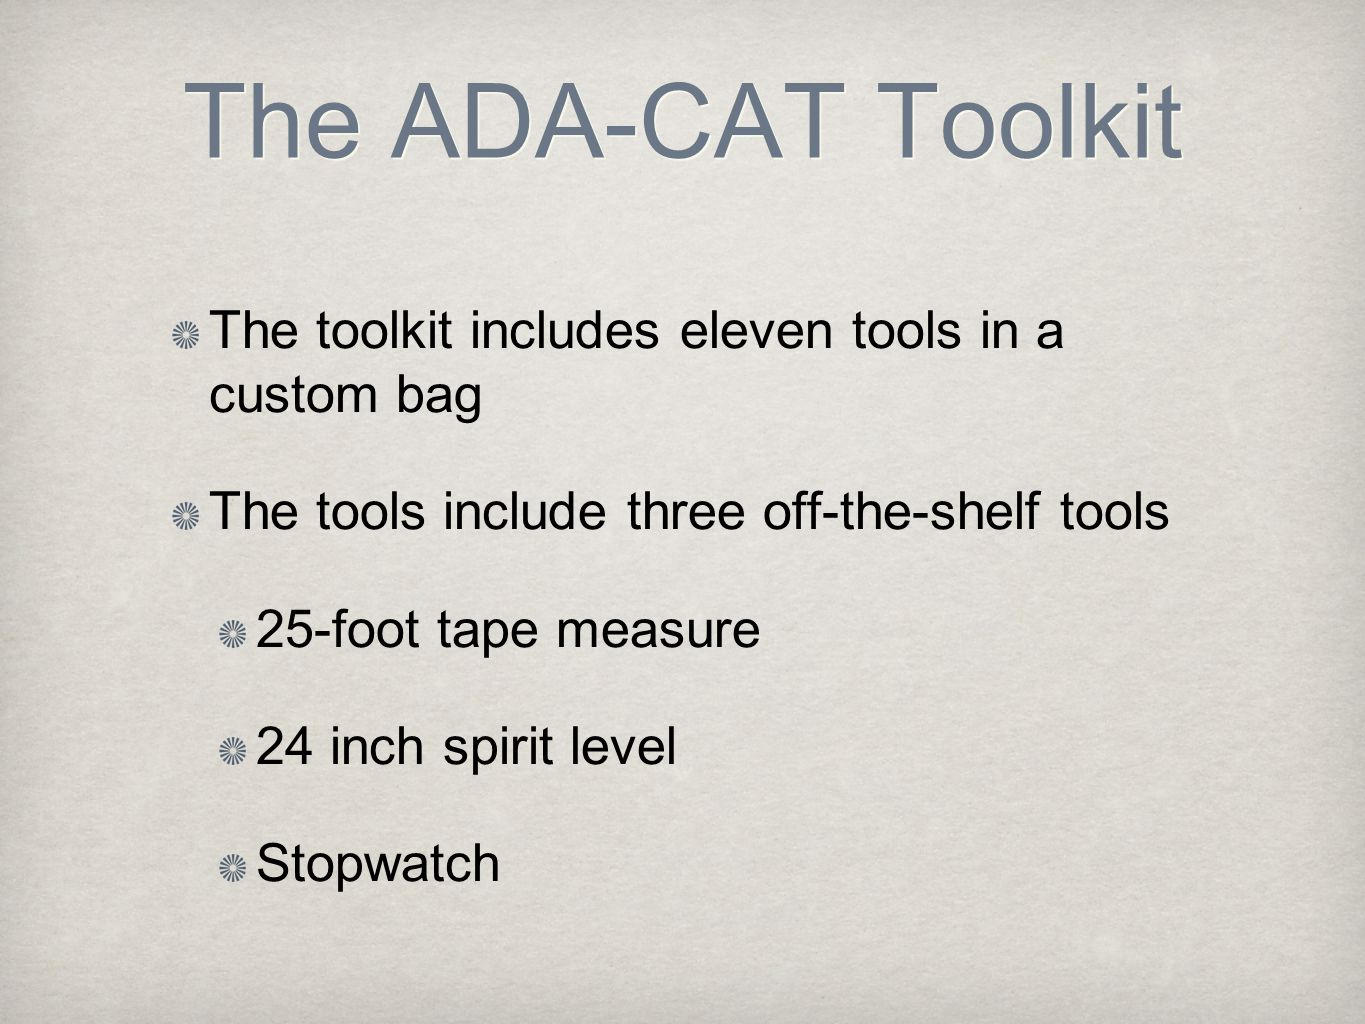 The ADA-CAT Toolkit The toolkit includes eleven tools in a custom bag The tools include three off-the-shelf tools 25-foot tape measure 24 inch spirit level Stopwatch